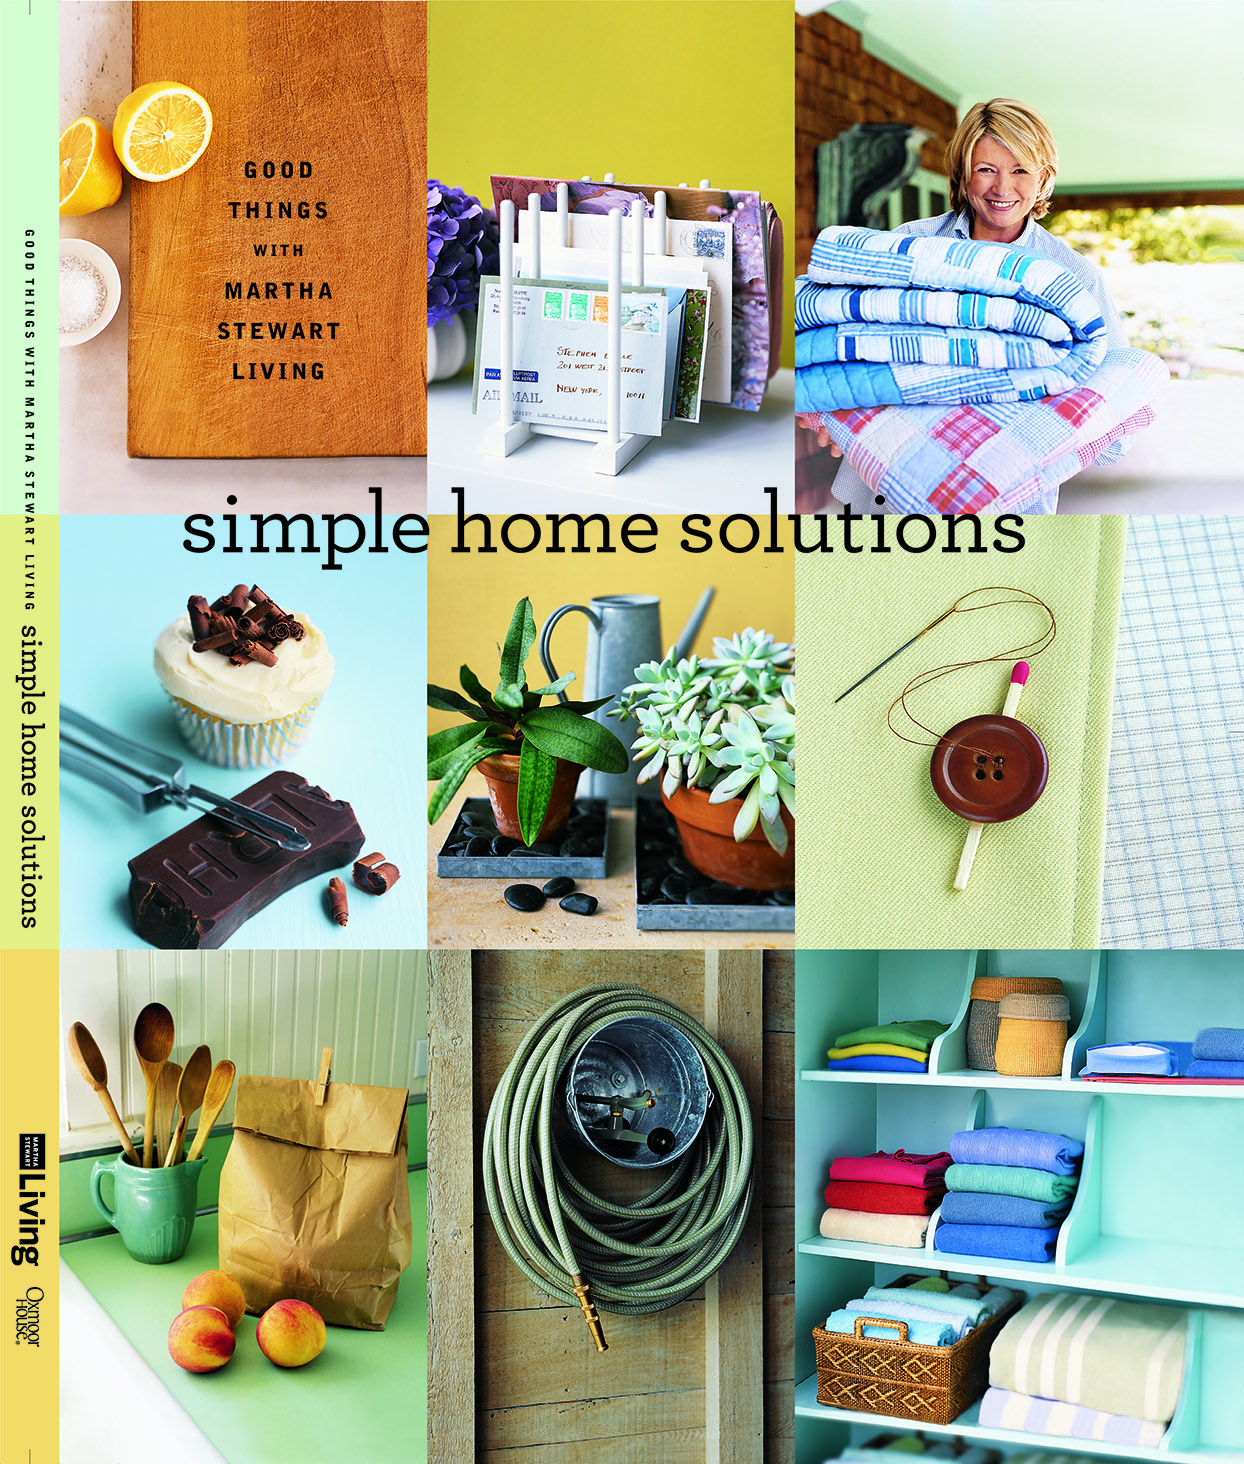 Simple Home Solutions book